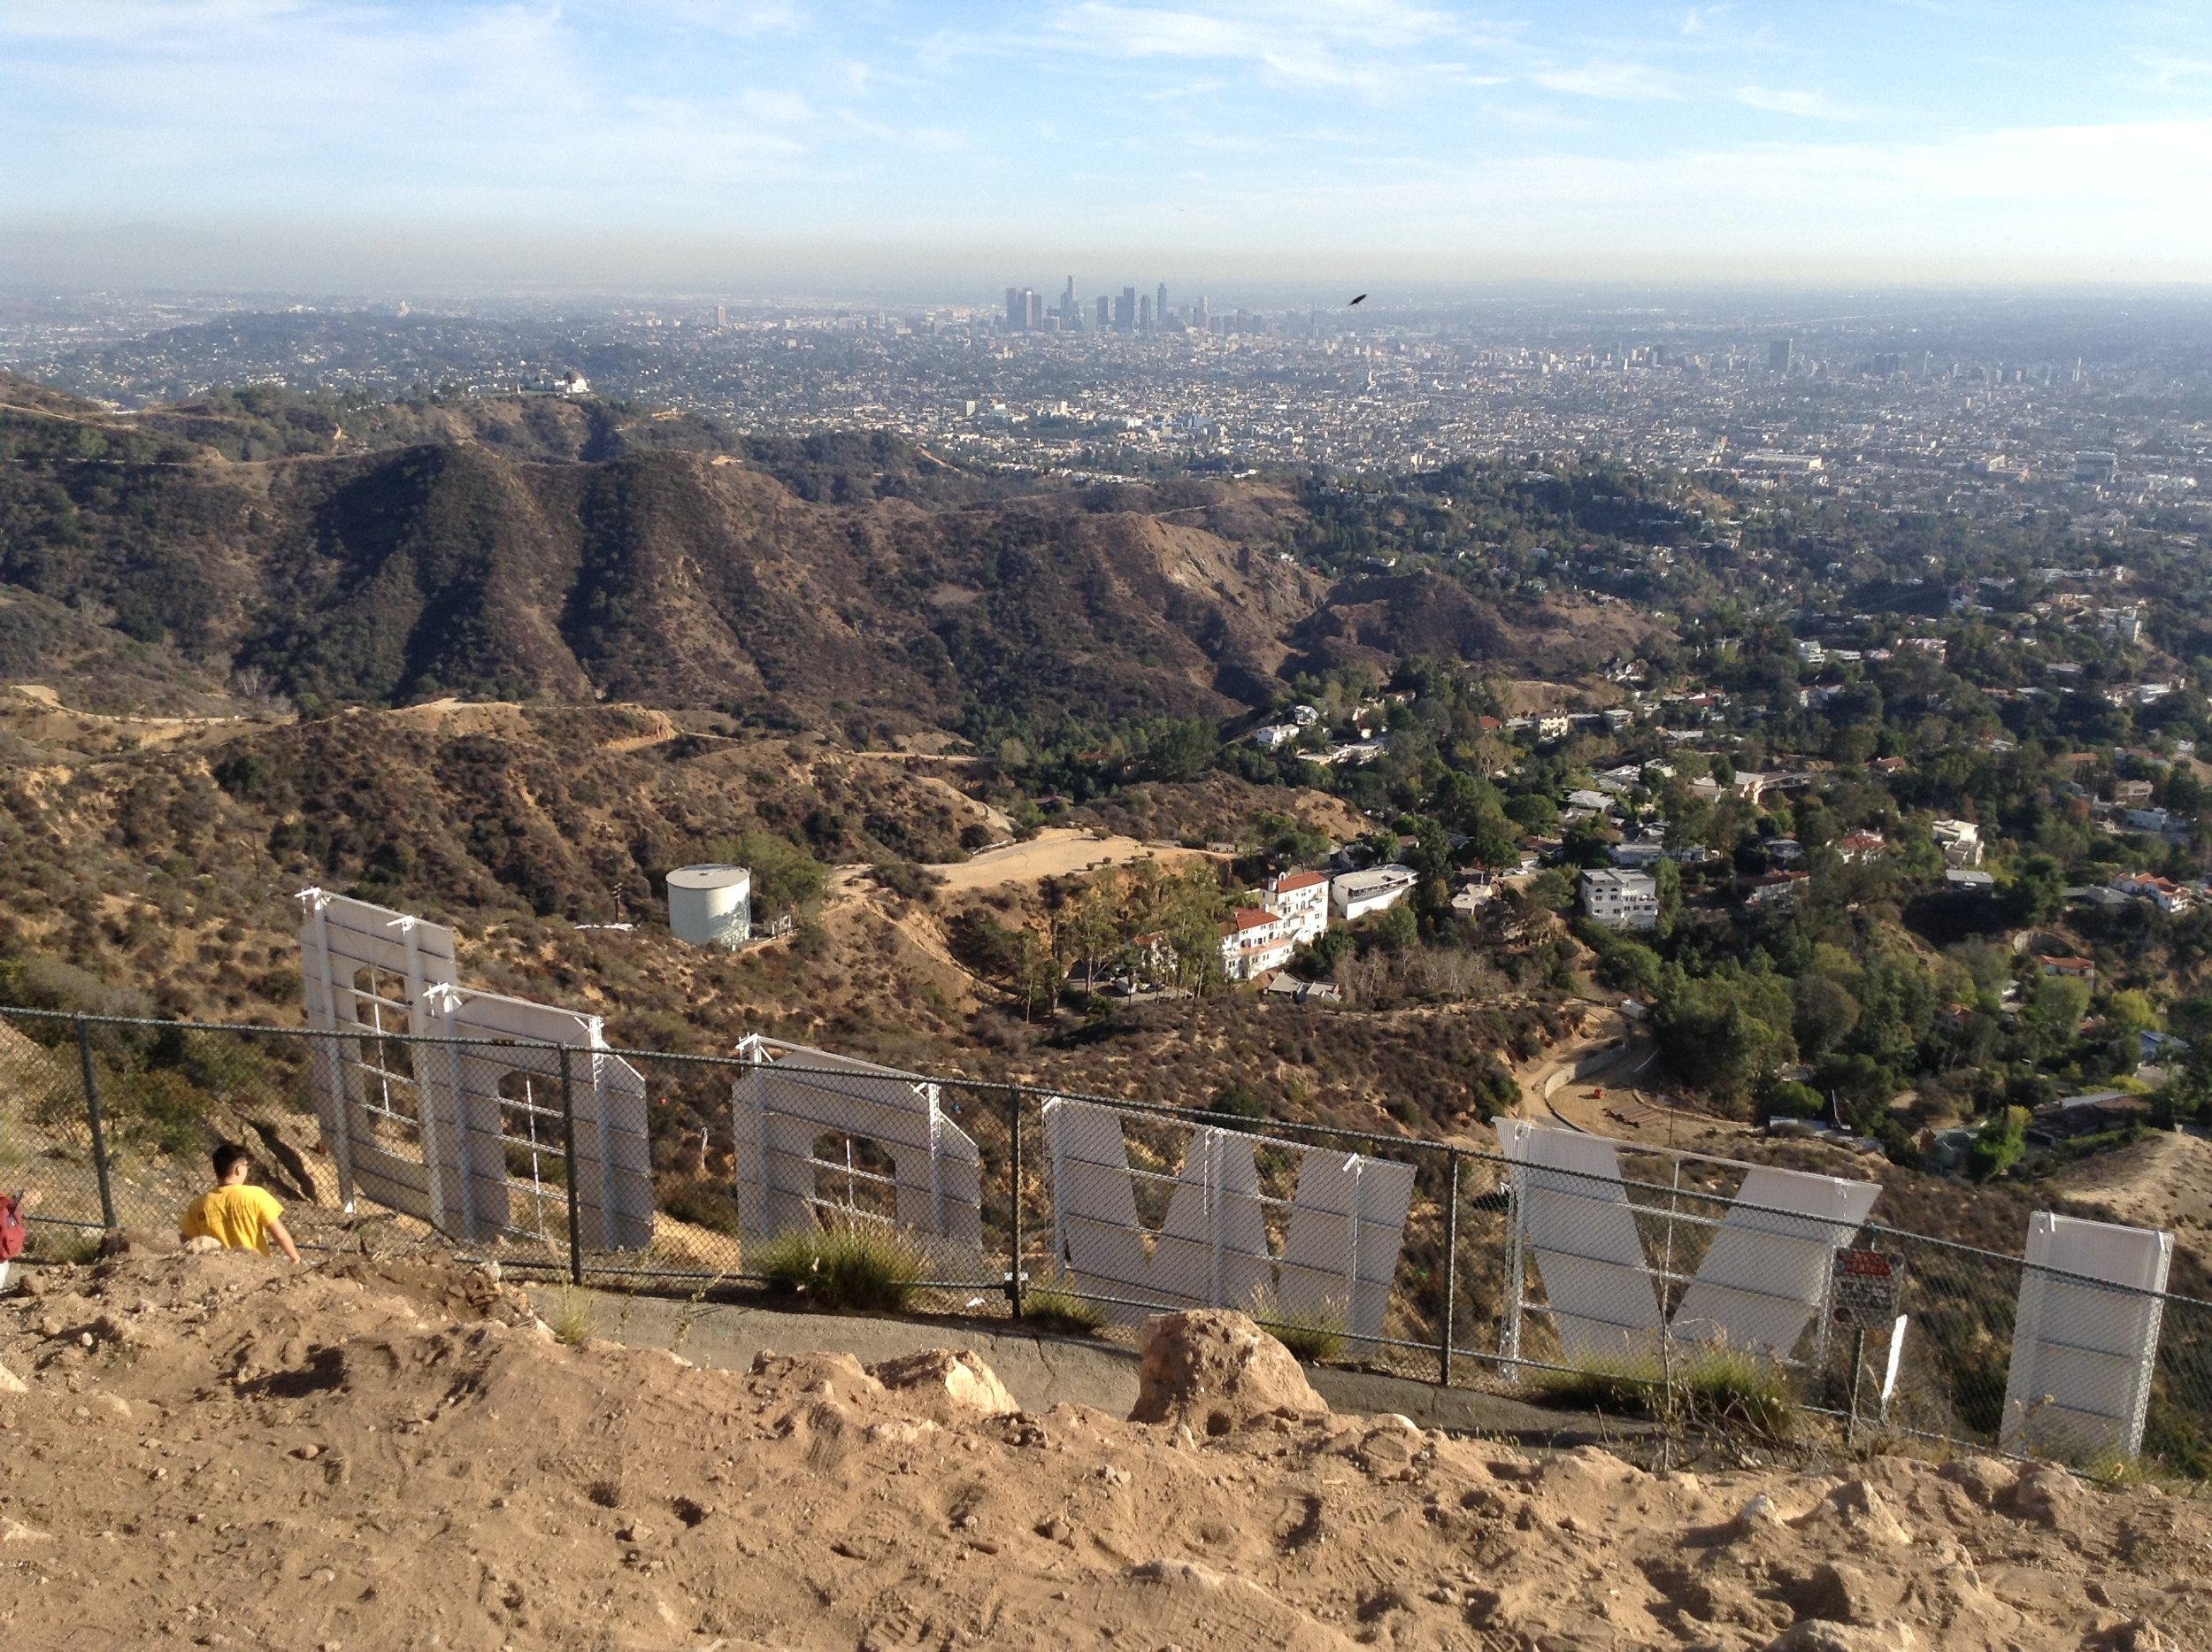 The Hollywood Sign logo skyline mountain view in LA.